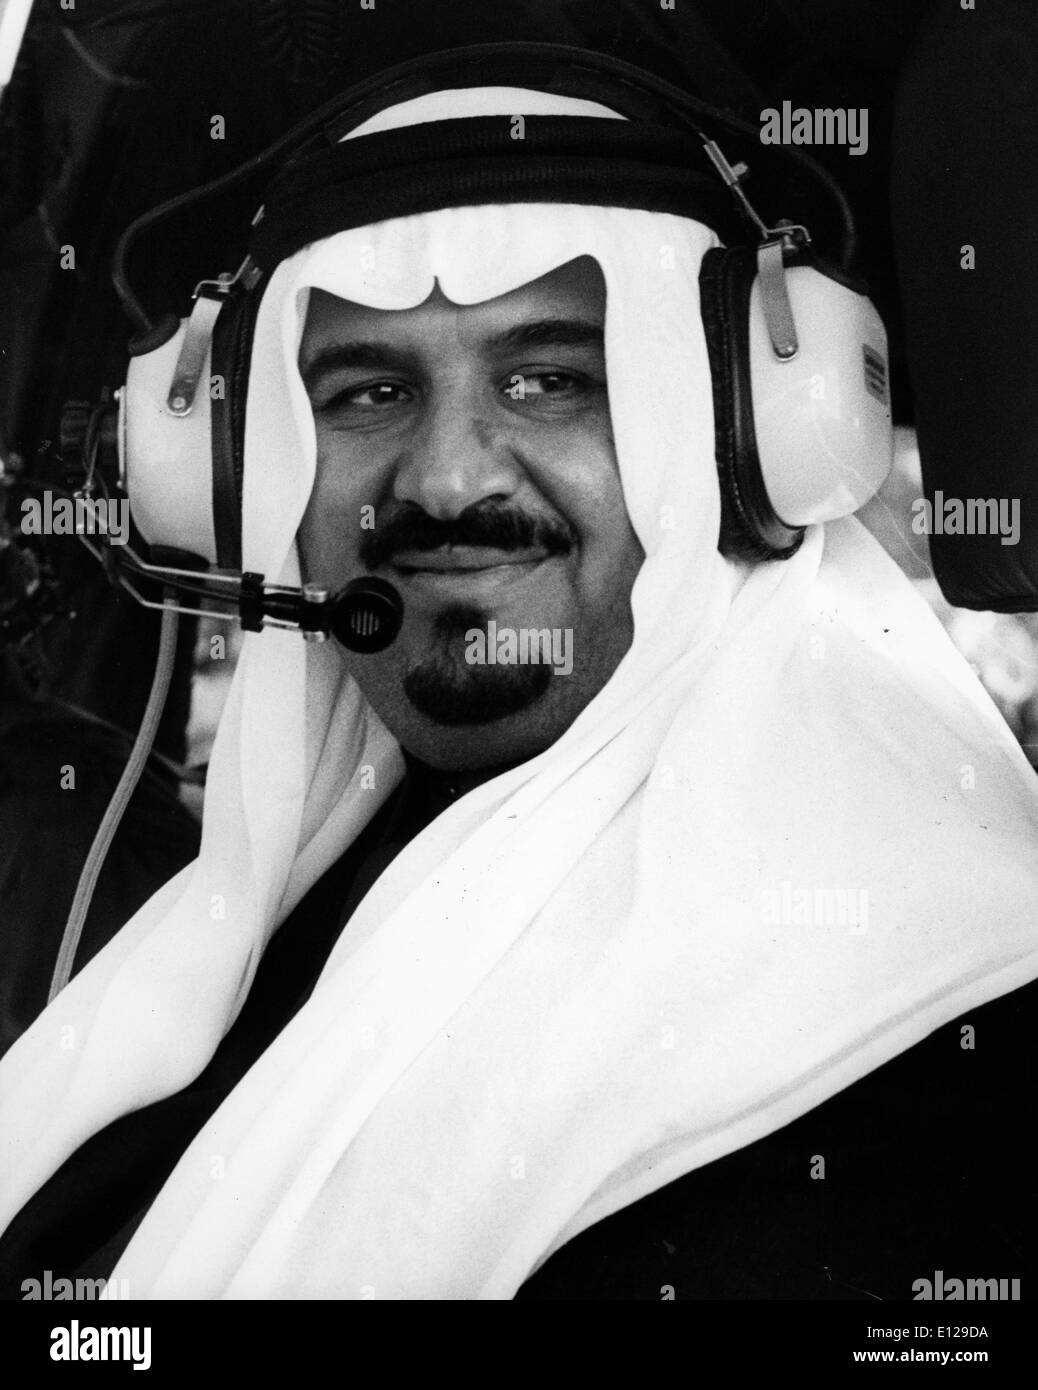 Apr 16, 2009 - Kuwait City, Kuwait - King ABDULLAH BIN ABDUL AZIZ Al Saud in helicopter. House of Saud is the royal family of the Kingdom of Saudi Arabia. The modern nation of Saudi Arabia was established in 1932, though the roots and influence for the House of Saud had been planted in the Arabian Peninsula several centuries earlier. Prior to the era of the Kingdom's founder, Abdul-Aziz ibn Saud, the family had ruled the Nejd and had conflicted on several occasions with the Ottoman Empire, the Sharif of Mecca, and the Al Rashid family of Ha'il - Stock Image